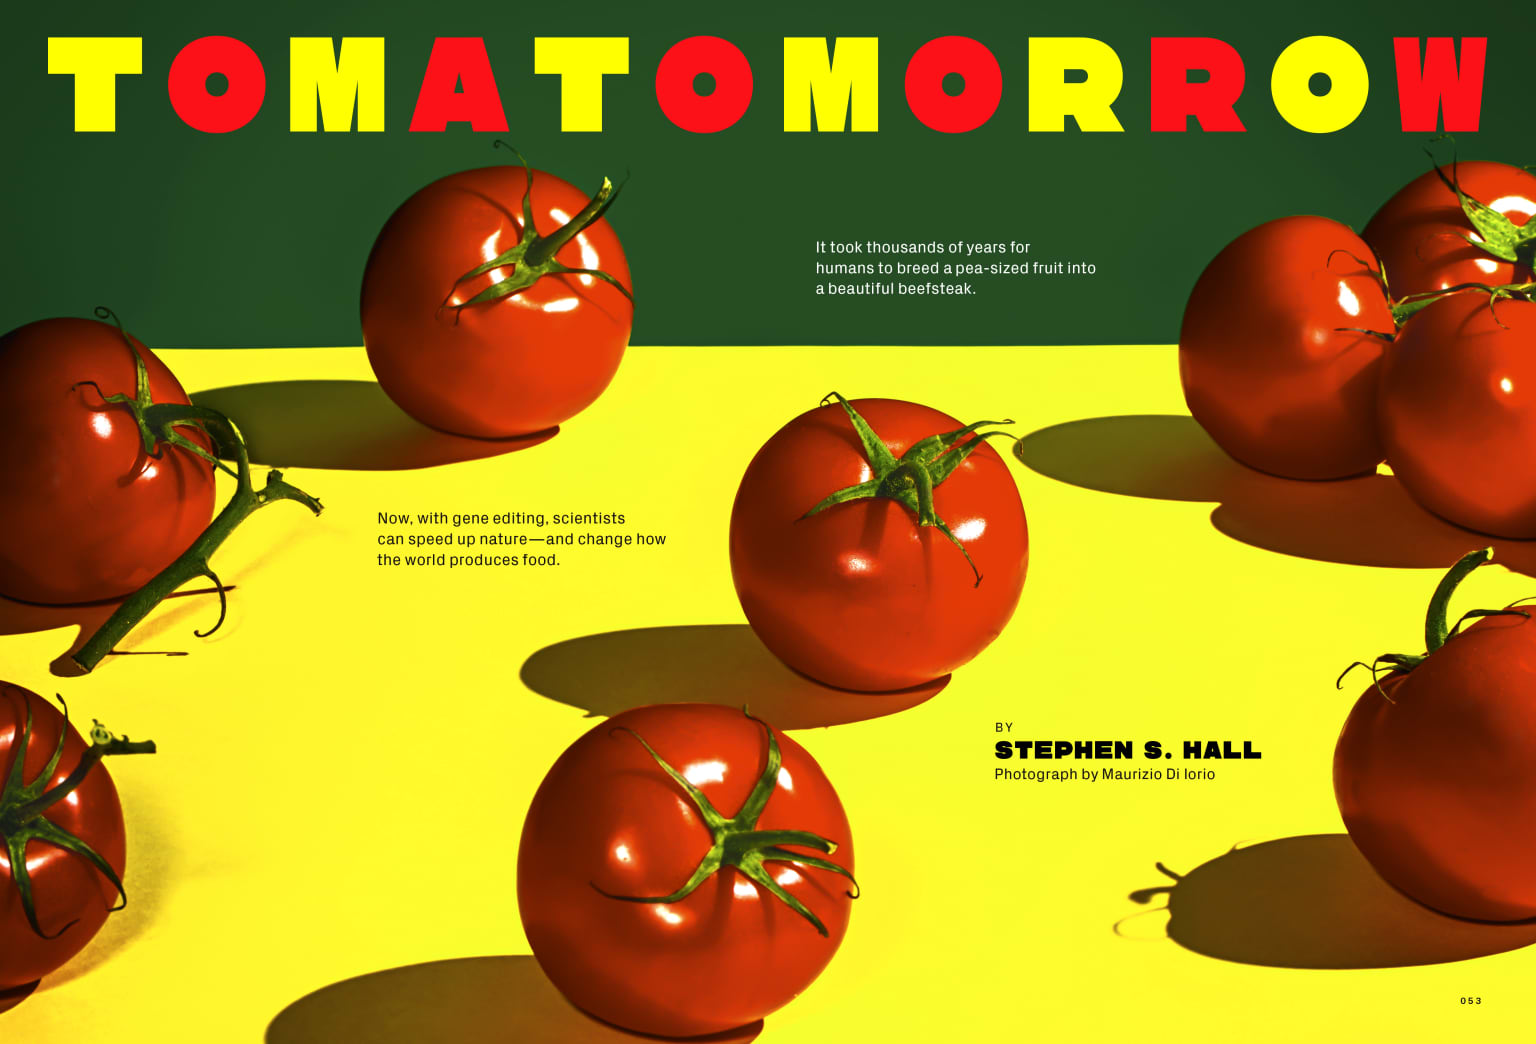 Wired Feature on making a better tomato using Crispr